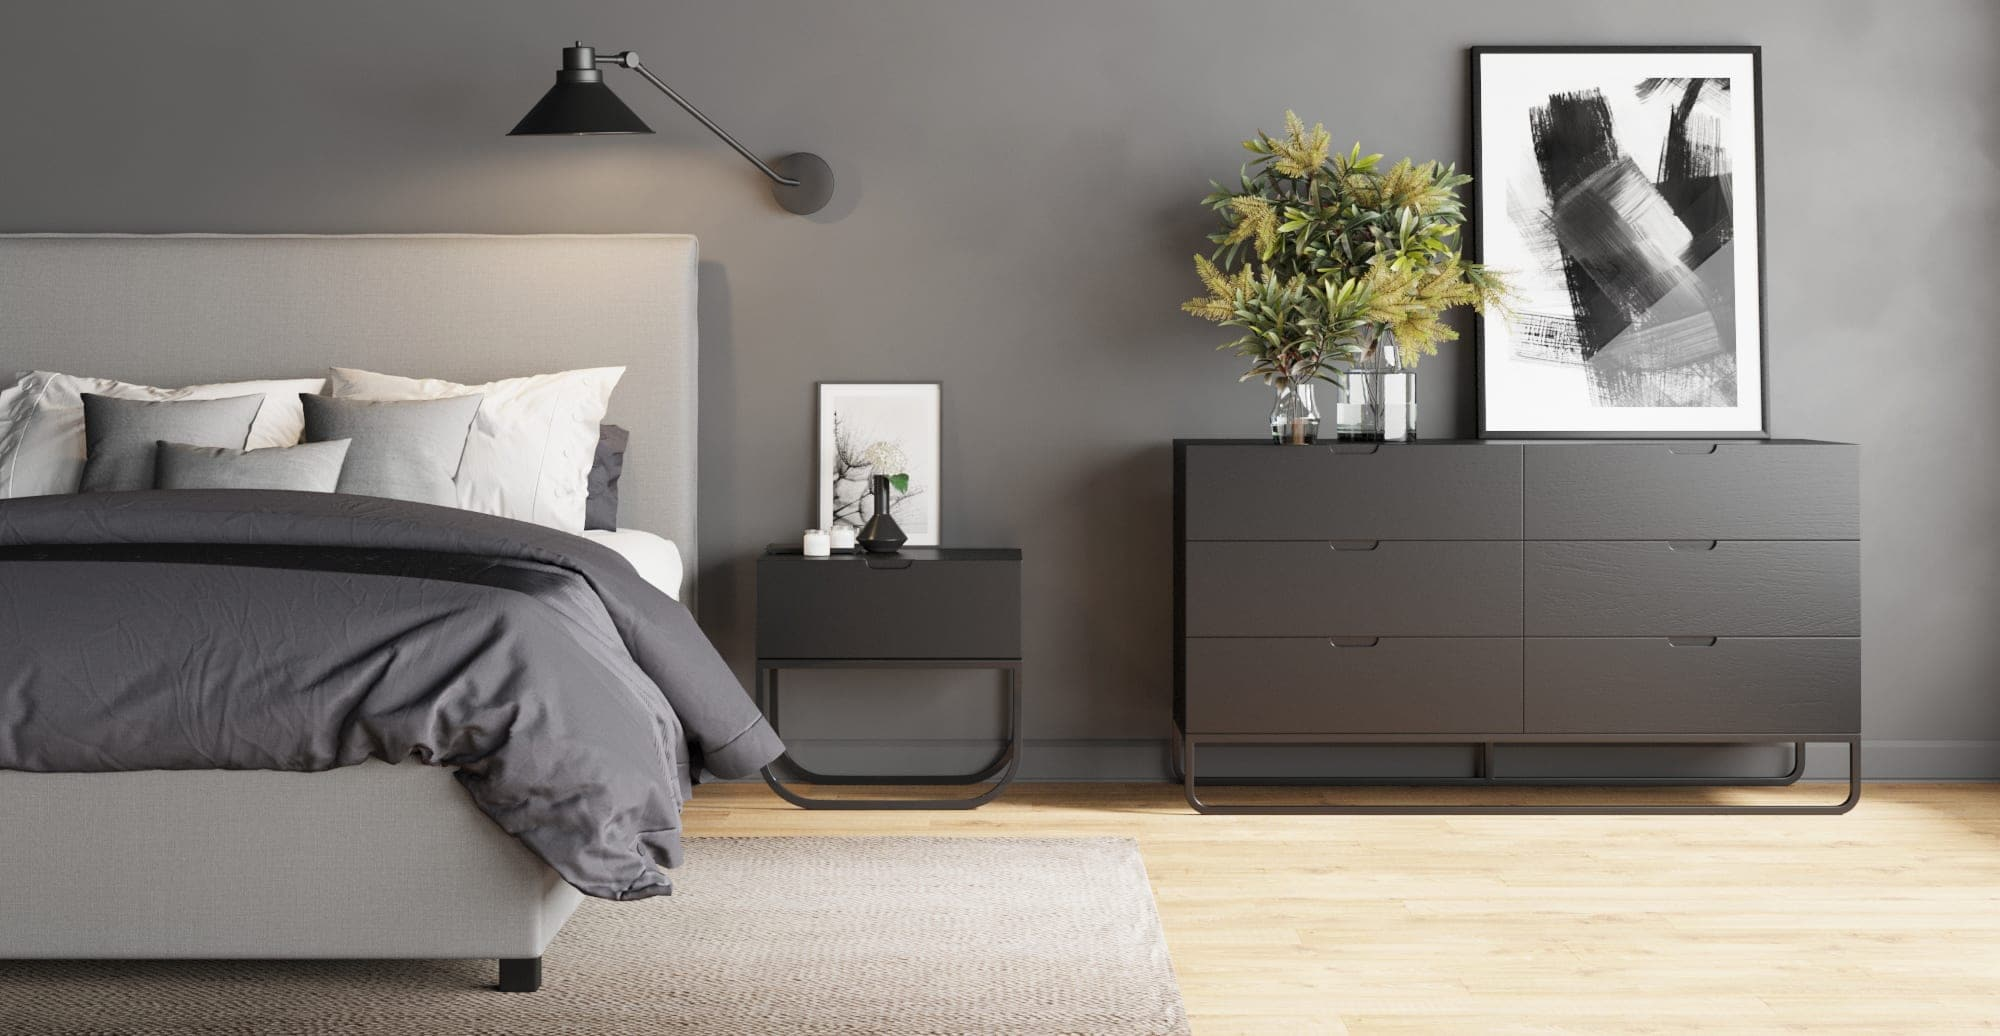 moody master bedroom with charcoal walls and black timber furniture minimalist bedroom design